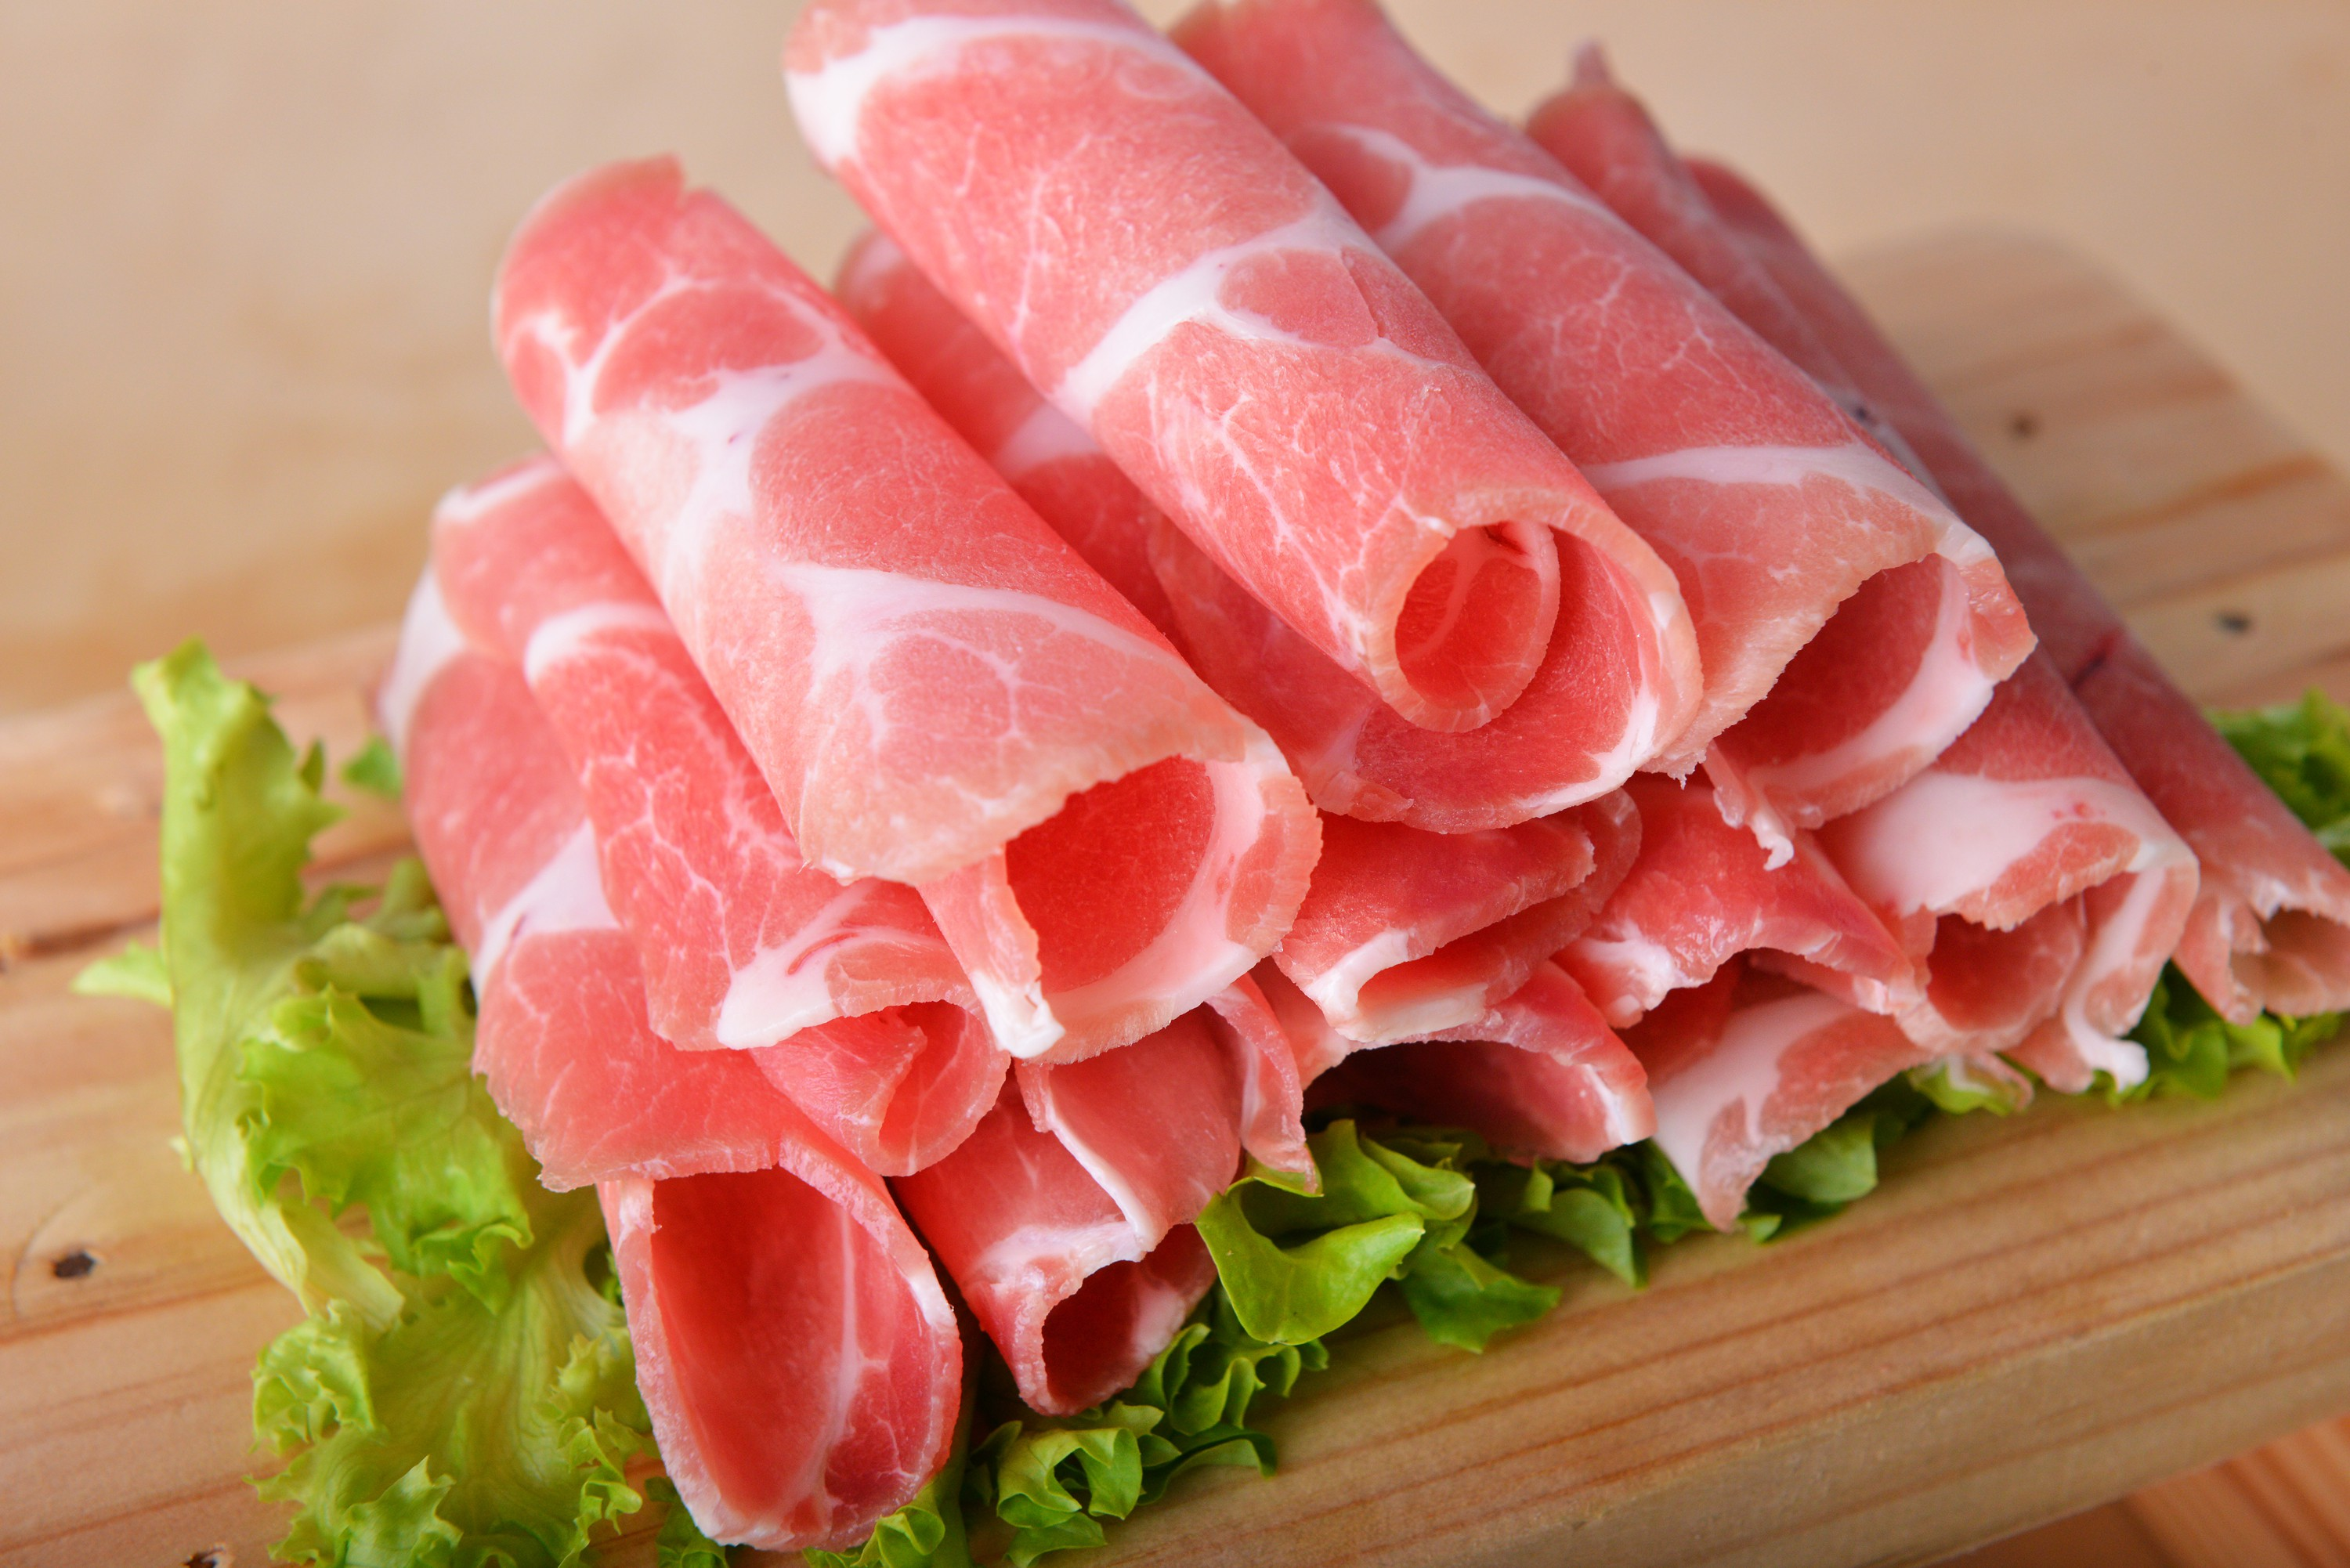 Sliced Pork (Shabu-shabu).